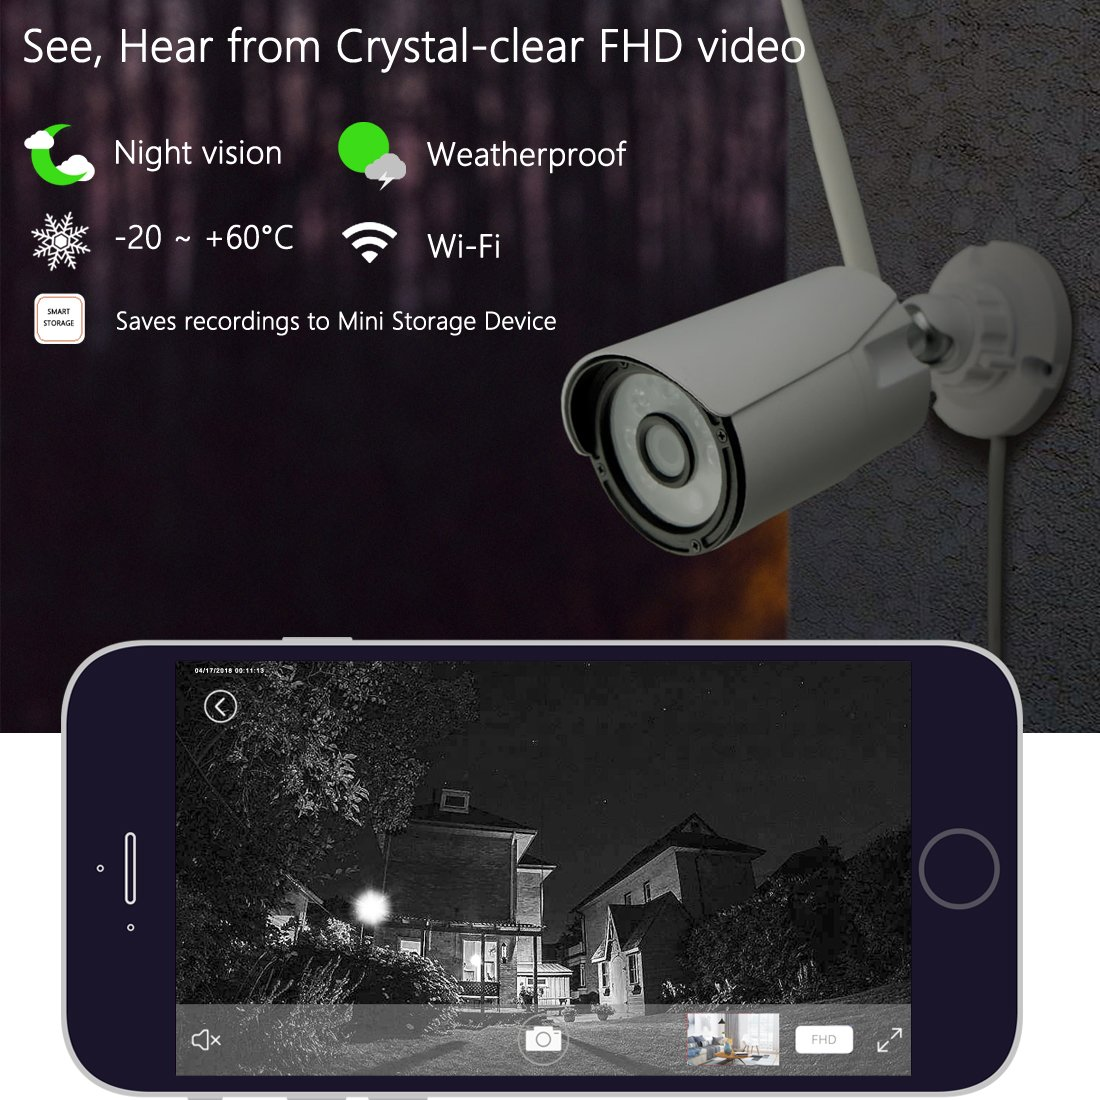 Titathink Mini Home Security Camera Surveillance System Plus 1 Wireless Full HD 1080P Waterproof Outdoor Bullet Security IP Camera with Night Vision, TT12C/N-1 by Titathink (Image #5)